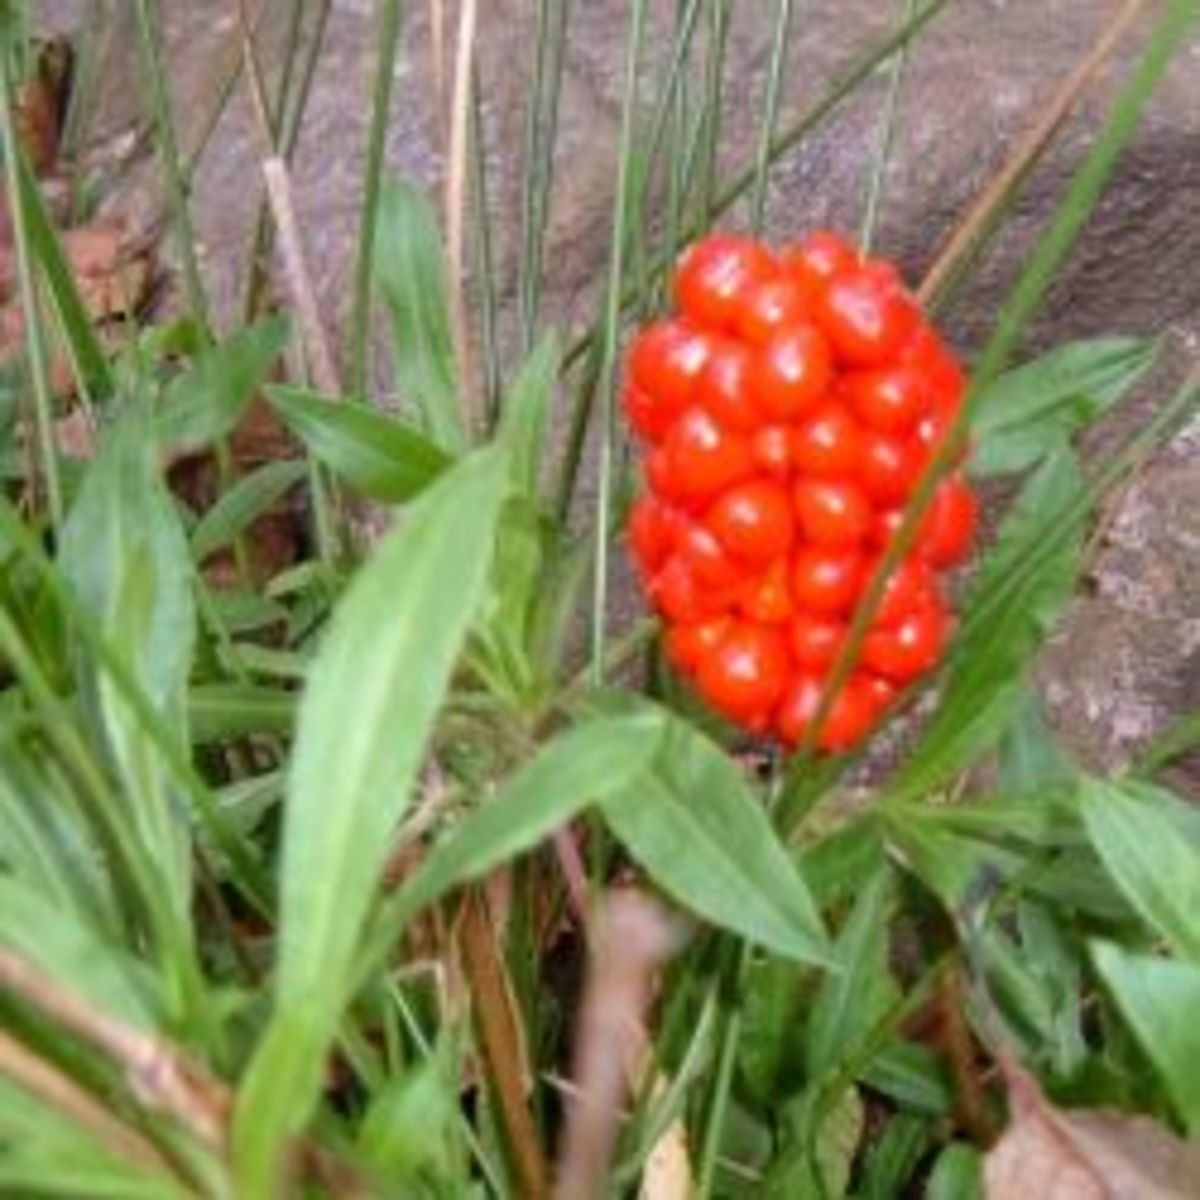 Jack-in-the-Pulpit Seed Pod